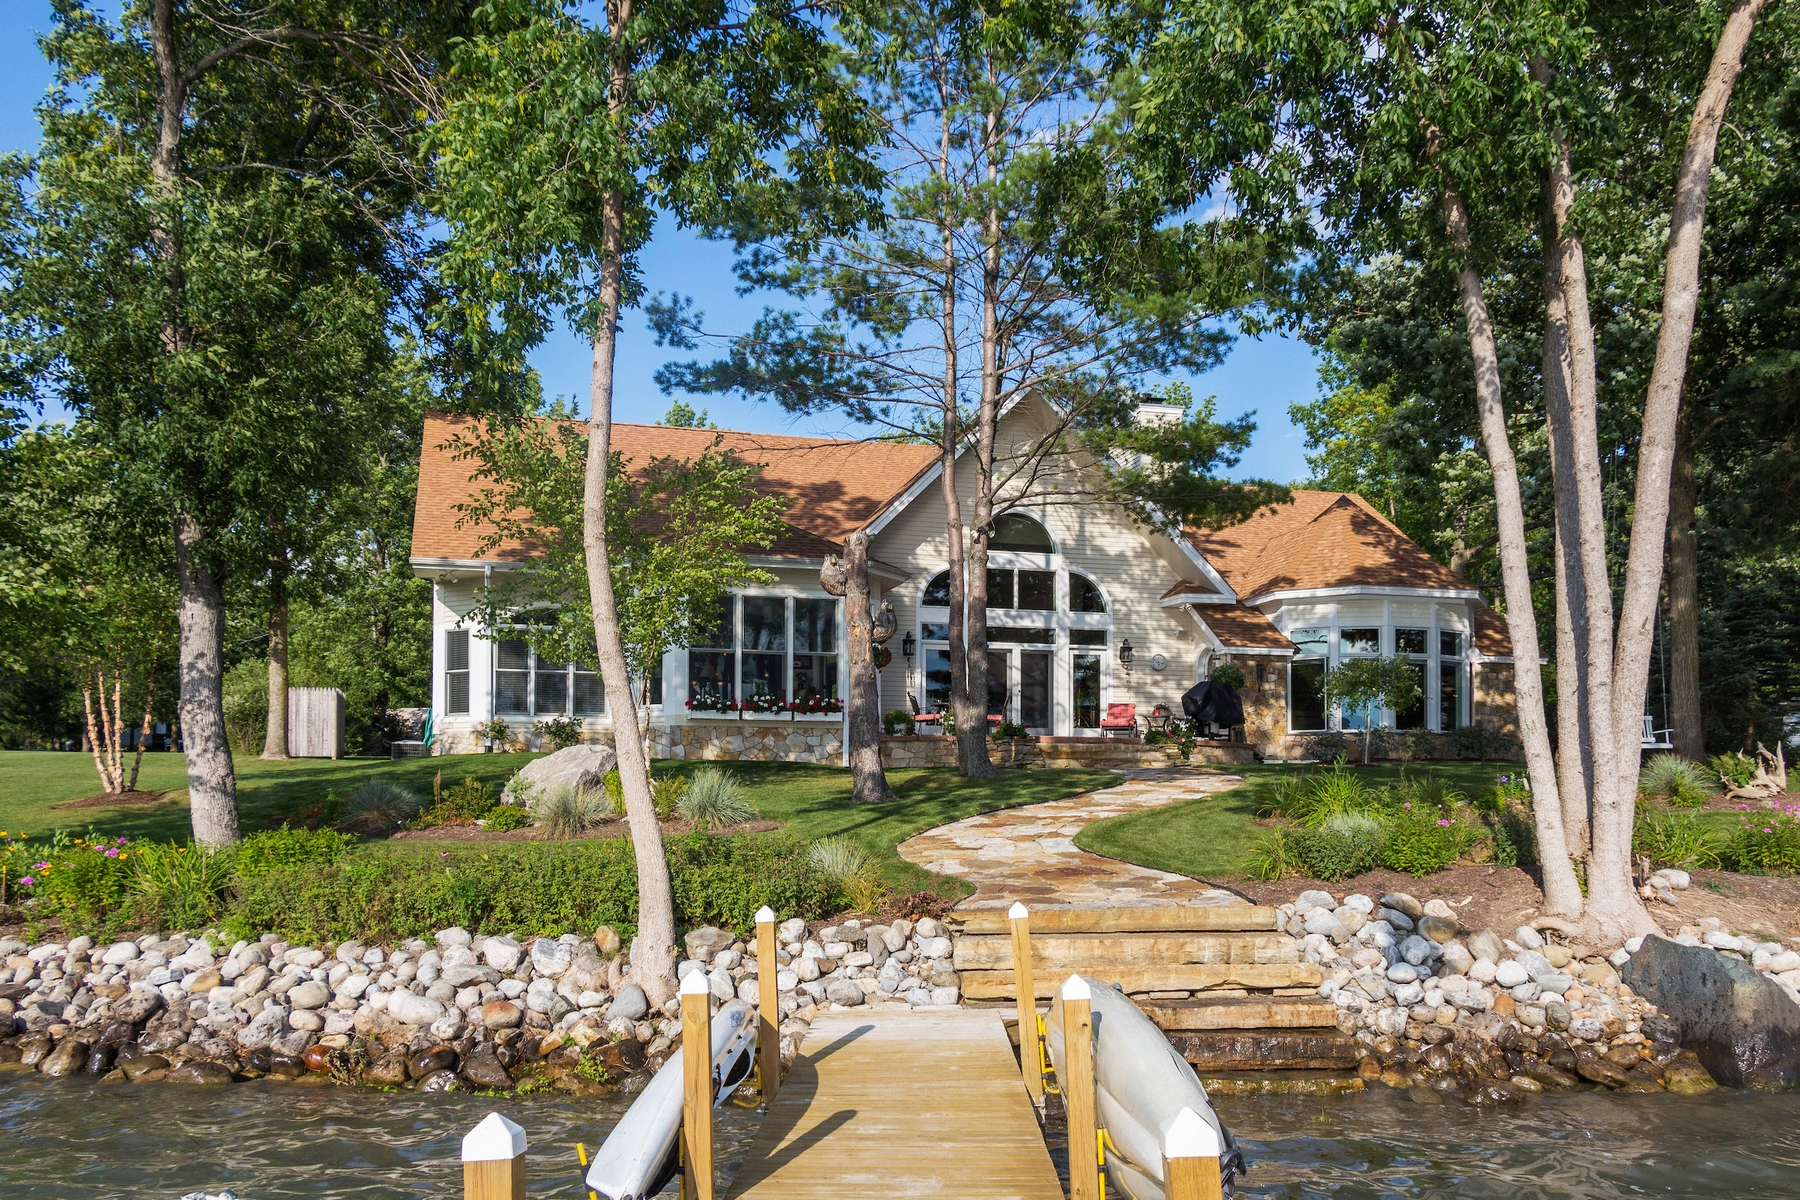 Villa per Vendita alle ore Custom Waterfront Home on Lake George 212 Black Point Road, Ticonderoga, New York, 12883 Stati Uniti